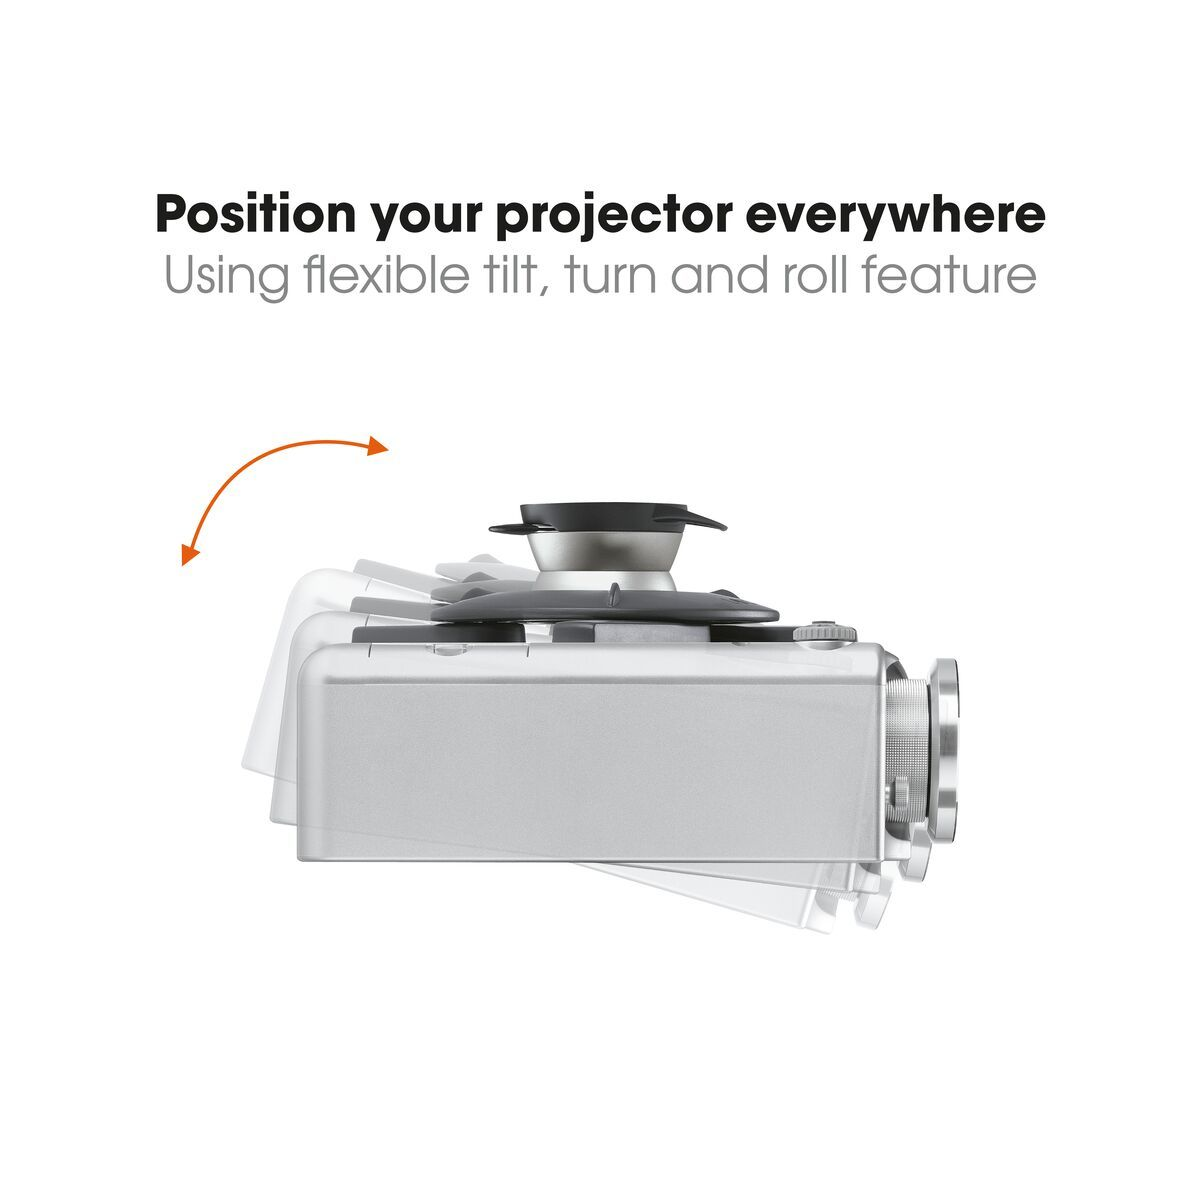 Vogel's EPC 6545 Projector Ceiling Mount - Max. weight load: 10 kg - USP